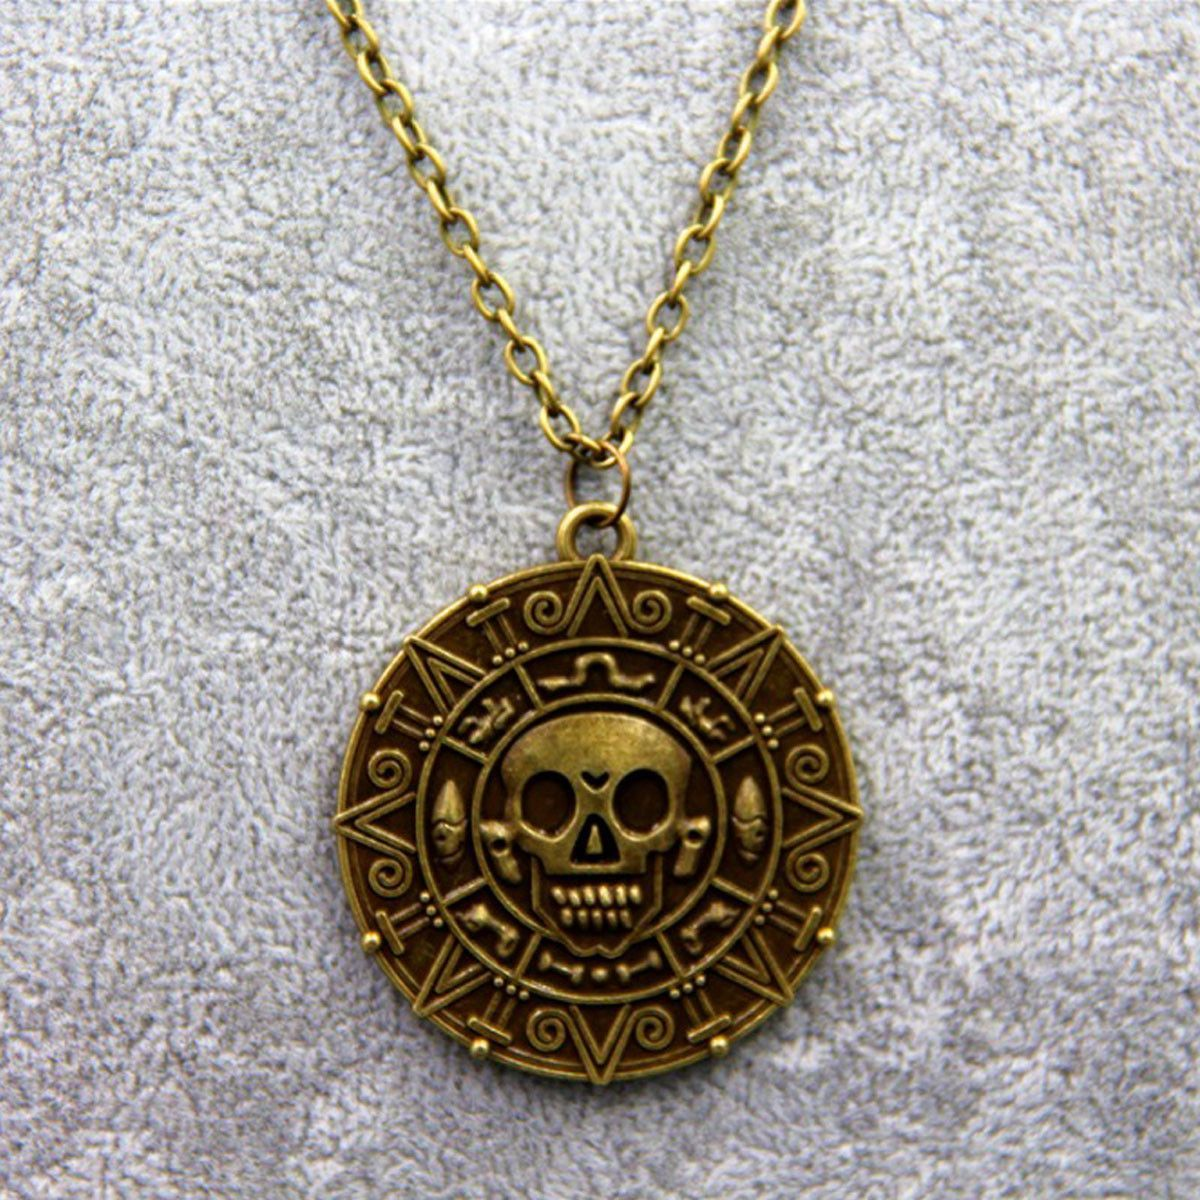 Pirates of the Caribbean Skull Head Pendant Necklace Cosplay Jewelry Gift